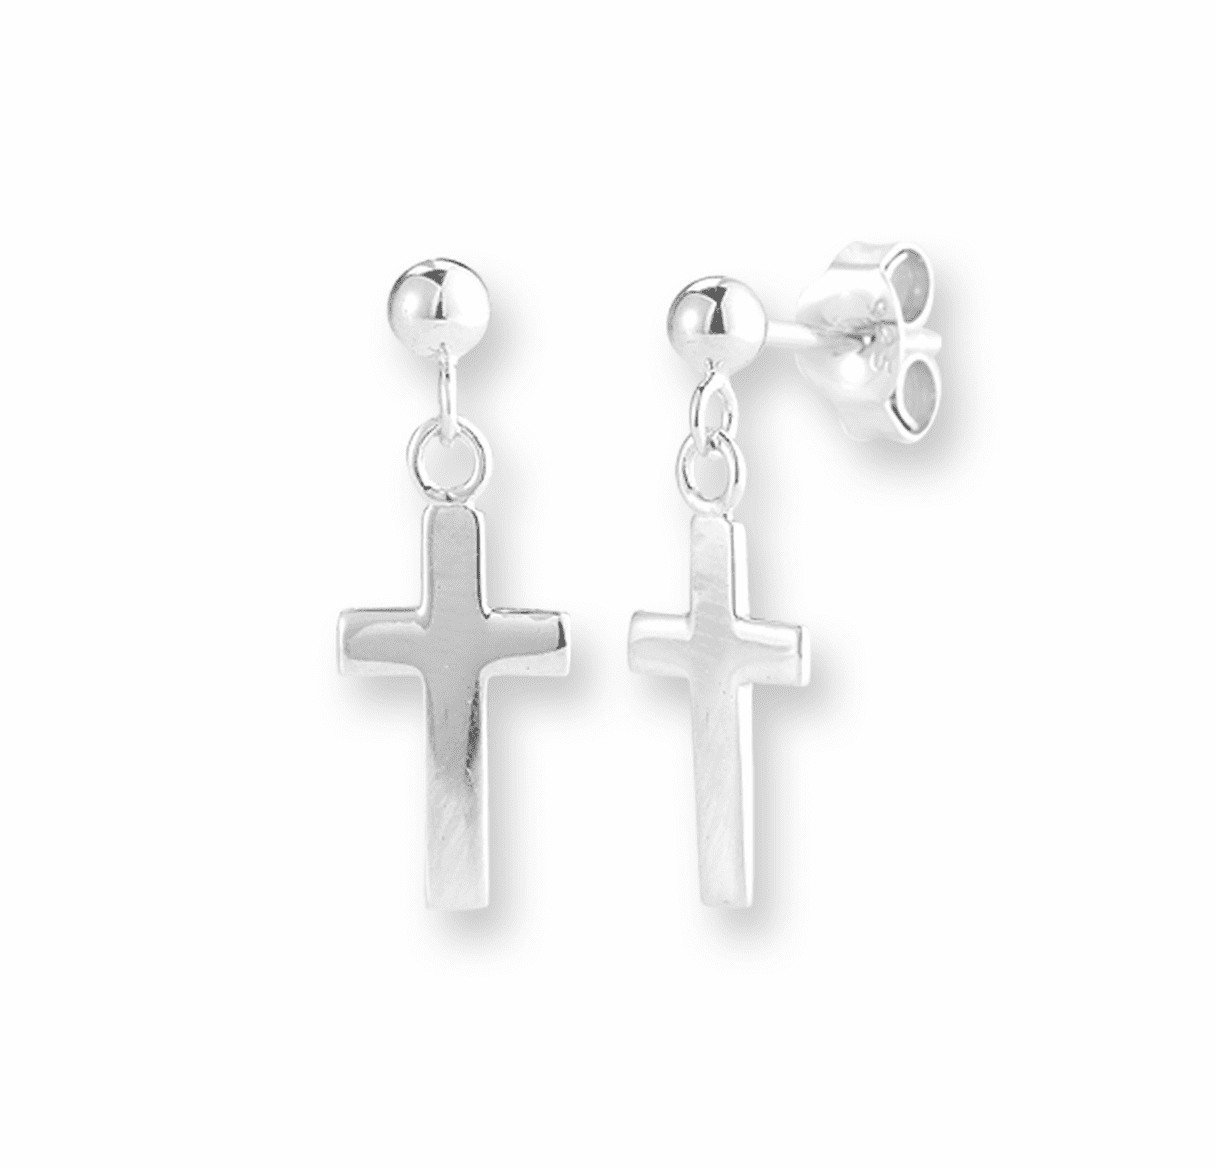 Sterling Silver Cross Earrings by HMH Religious